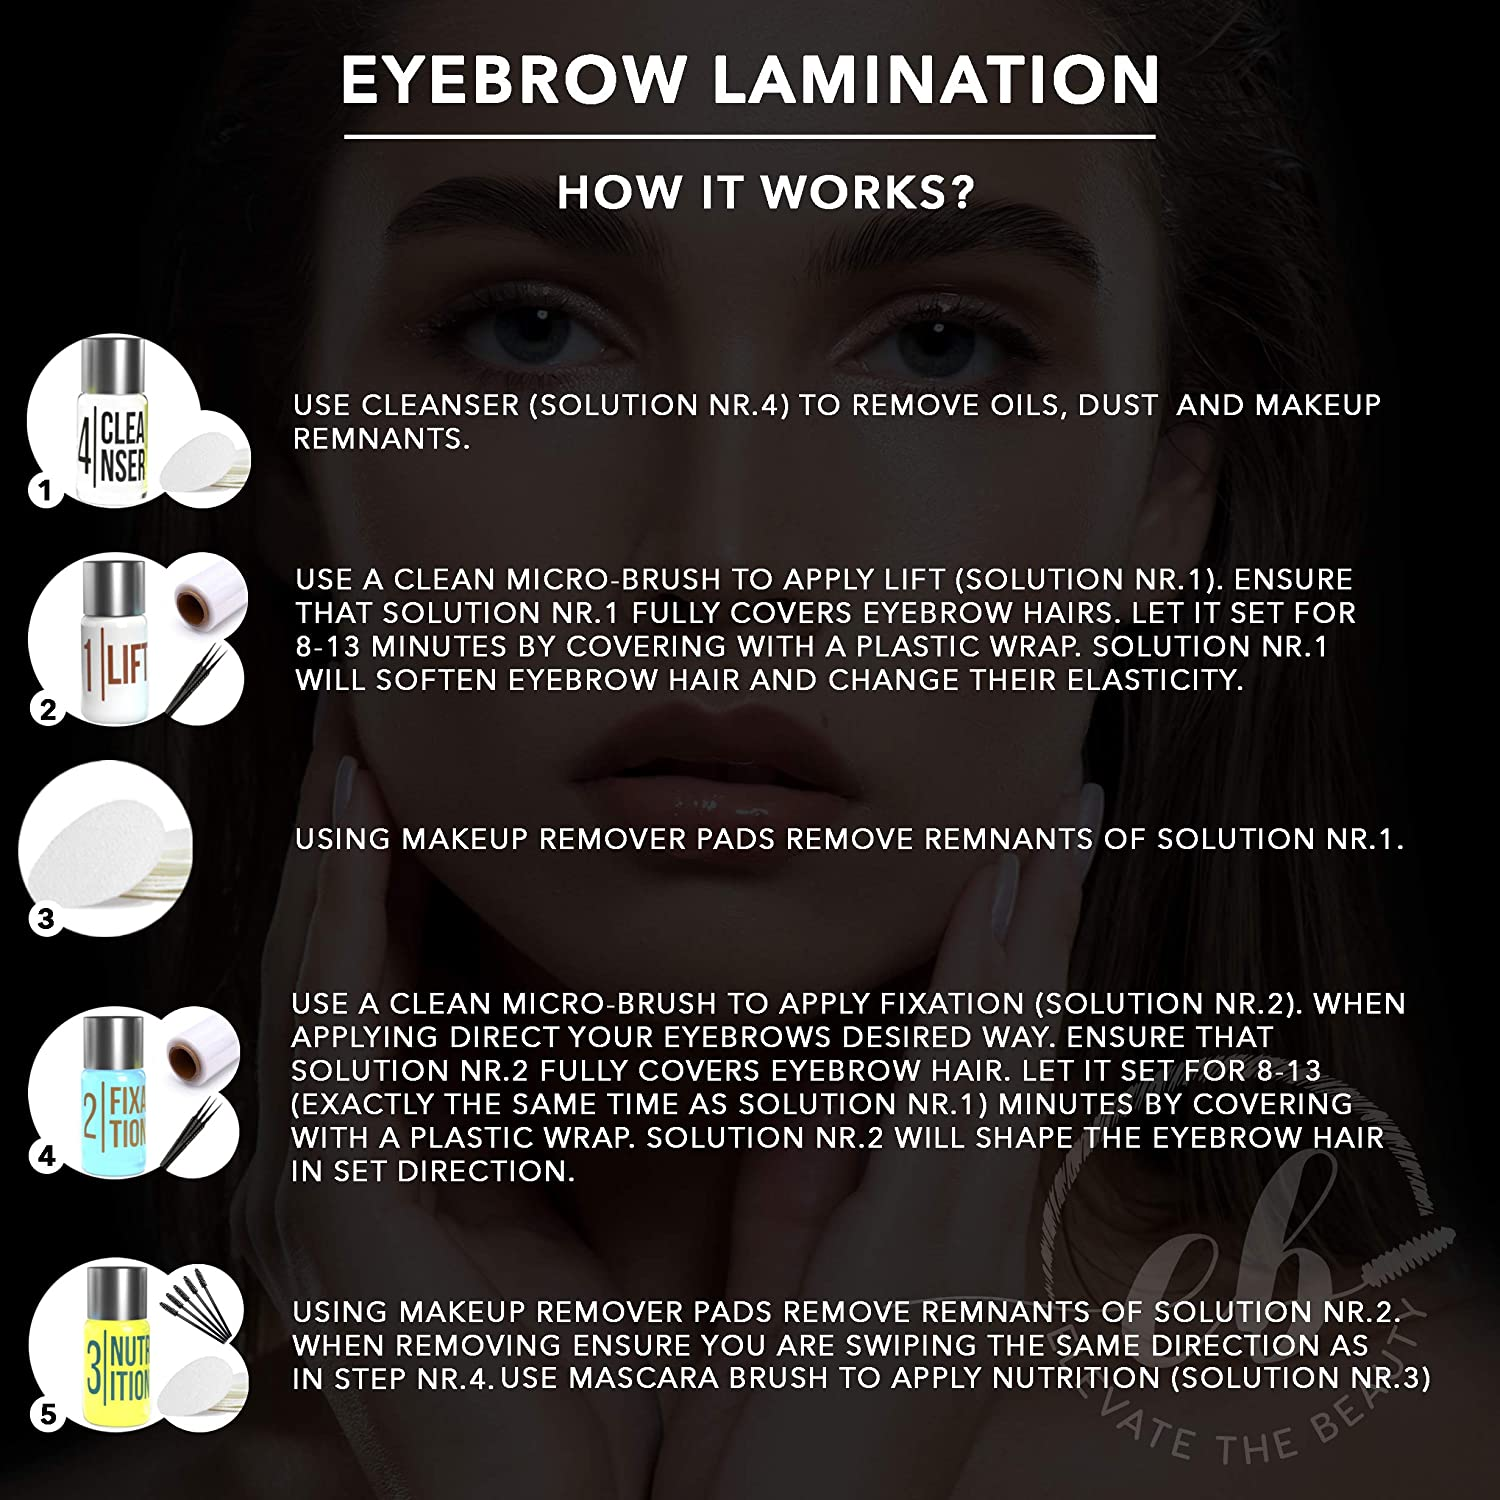 Elevate the Beauty Eyebrow And Lash Lamination Kit | DIY Perm For Lashes and Brows | Professional Lift For Trendy Fuller Brow Look And Curled Lashes | Eyebrow Brush And Eyelash Micro Brushes Added : Beauty